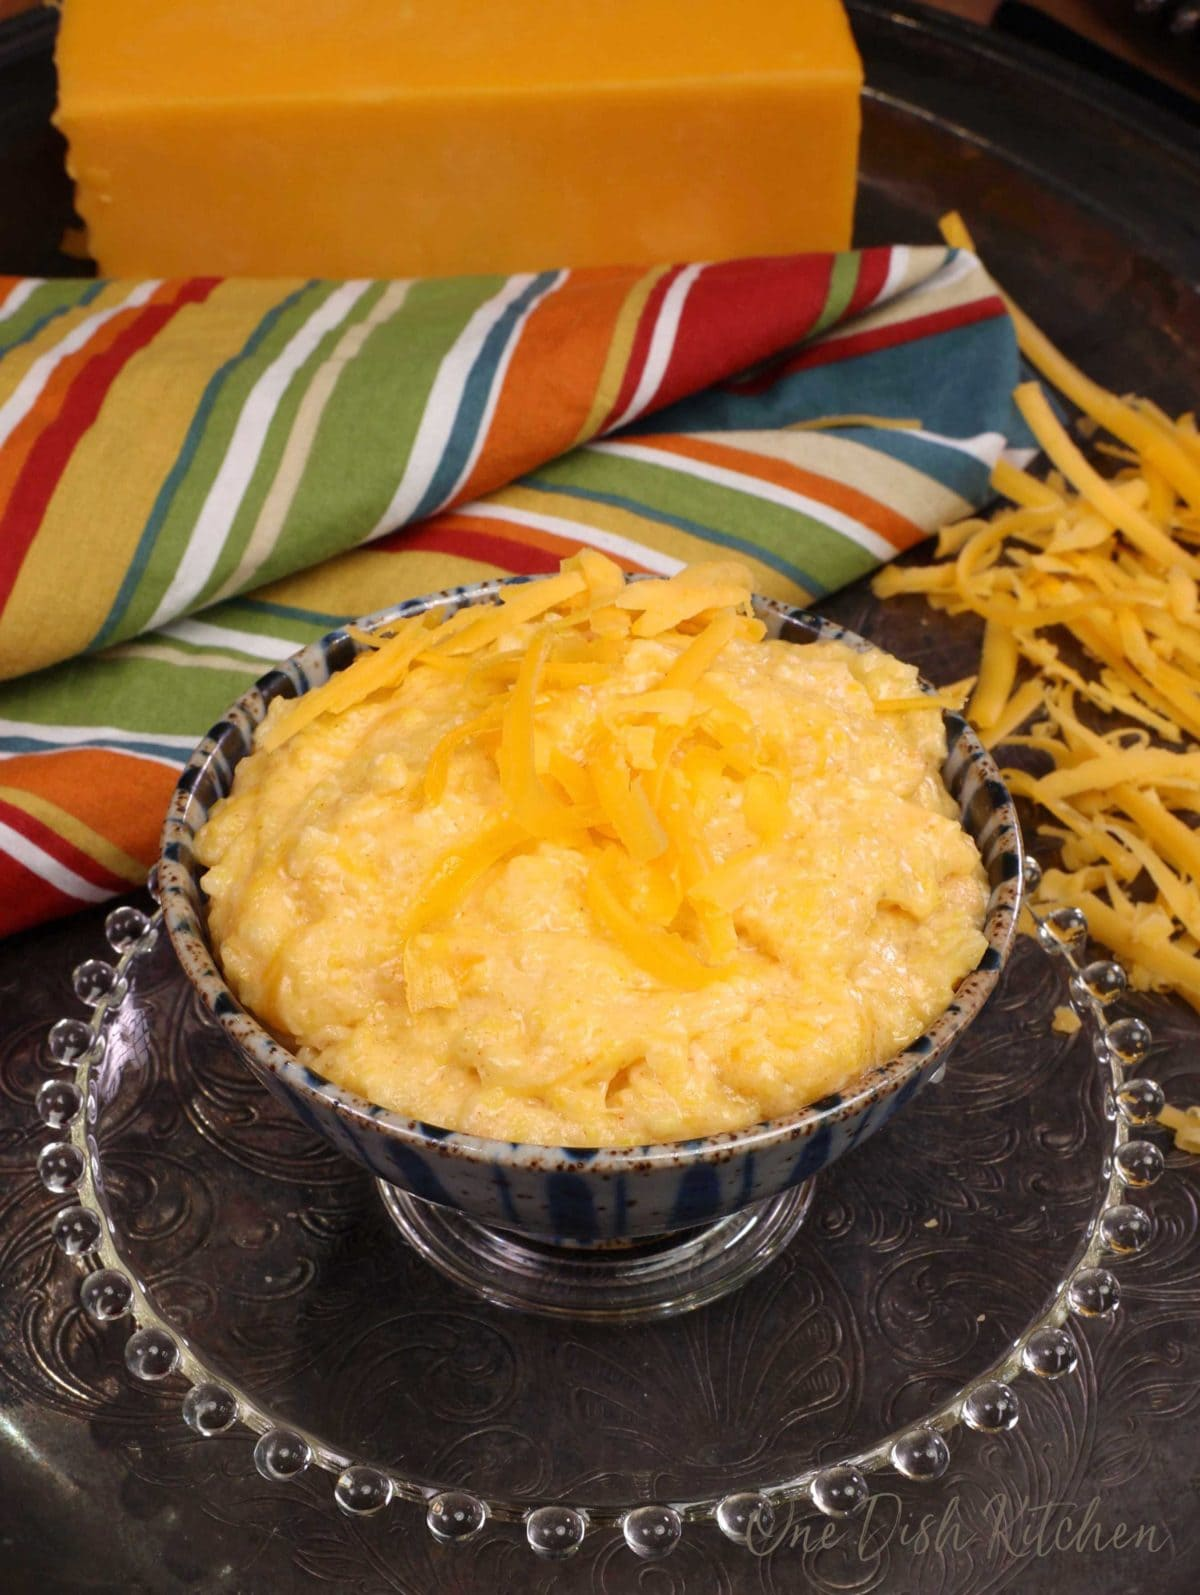 a small bowl of cheese grits next to shredded cheese and a large block of cheese in the background